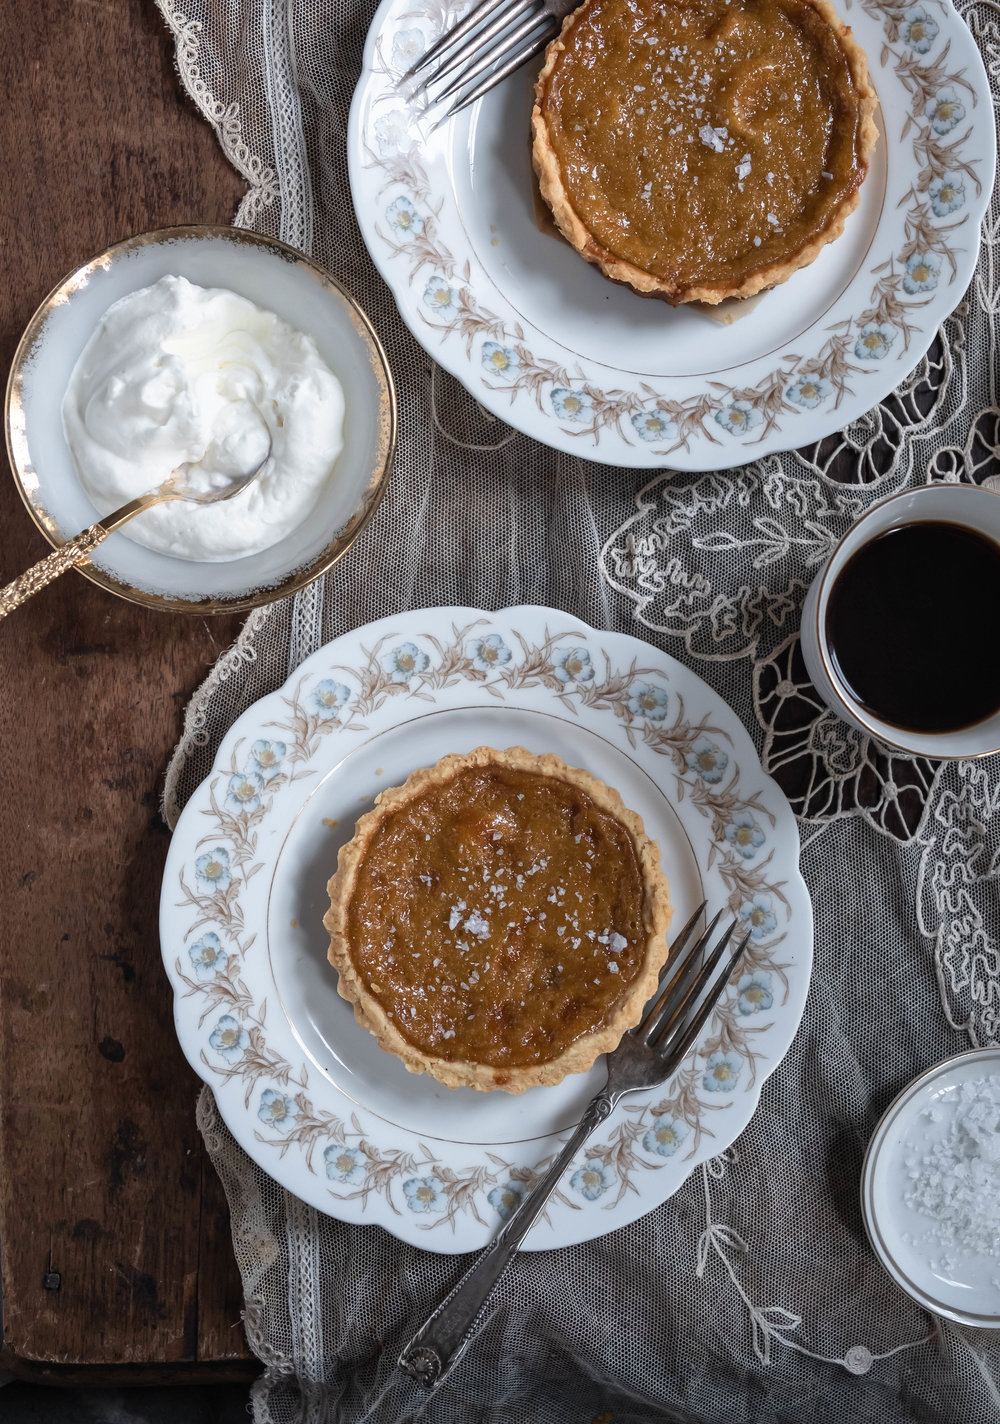 ROSE & IVY Fall Baking Essentials + Salted Maple Tart